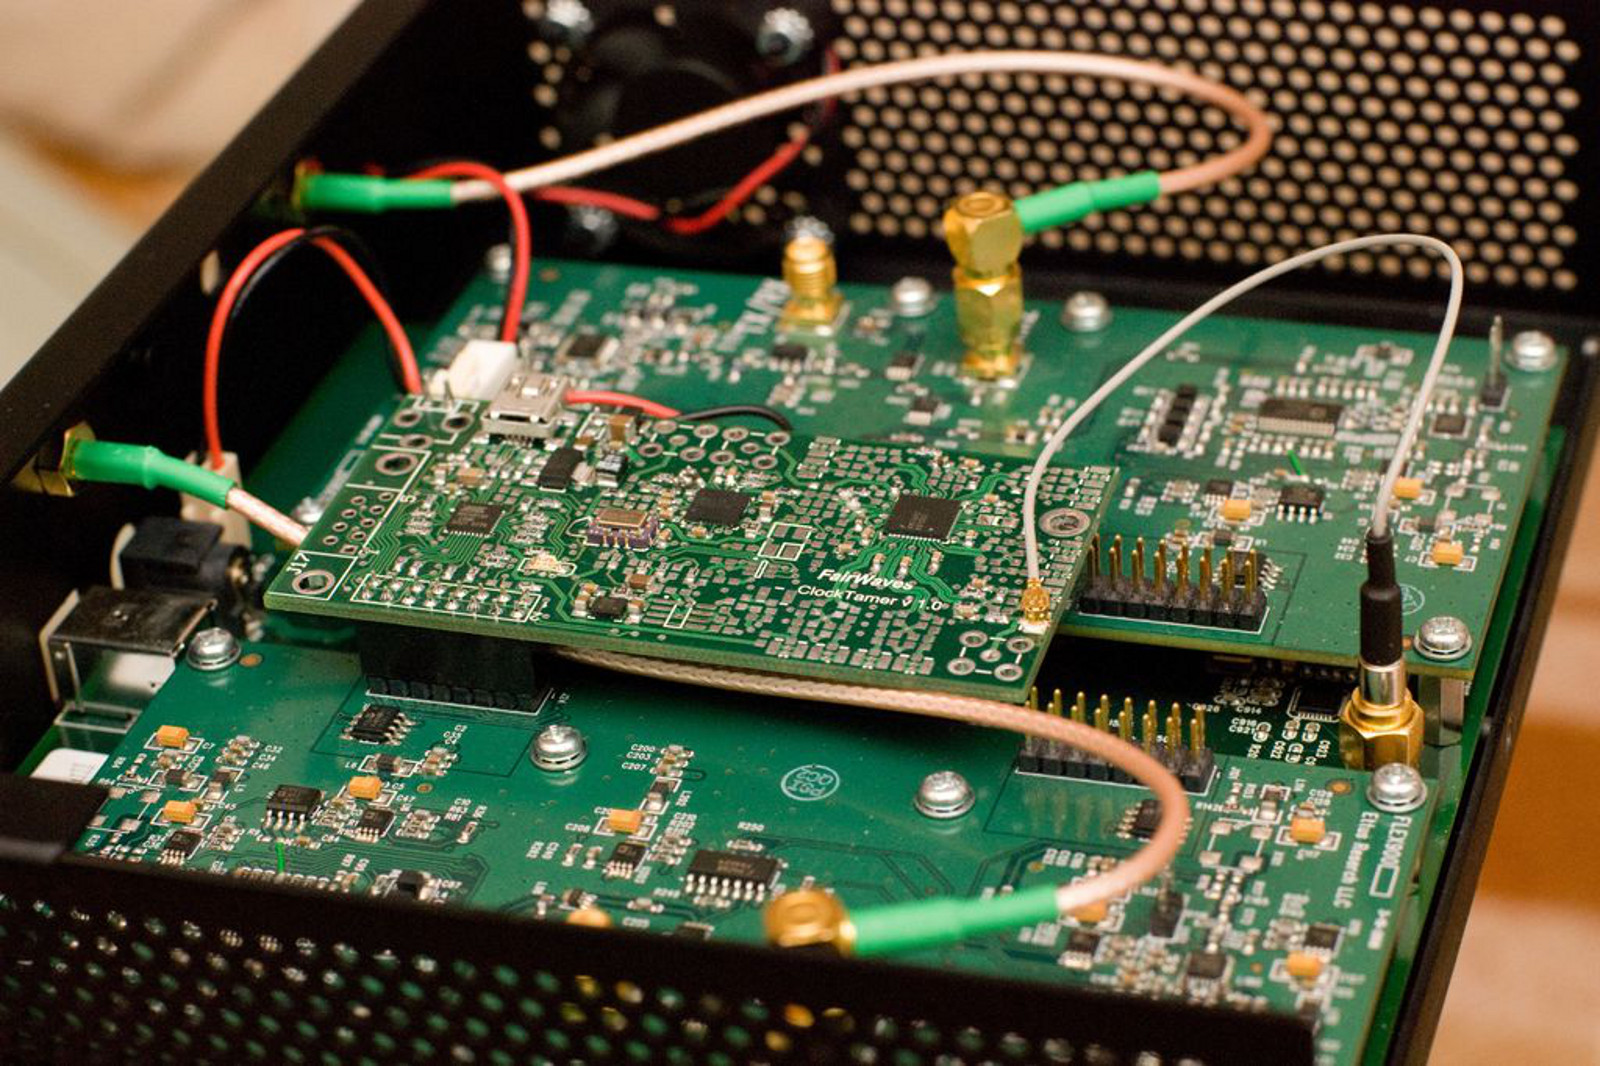 A ClockTamer v1.0 board fitted to a USRP